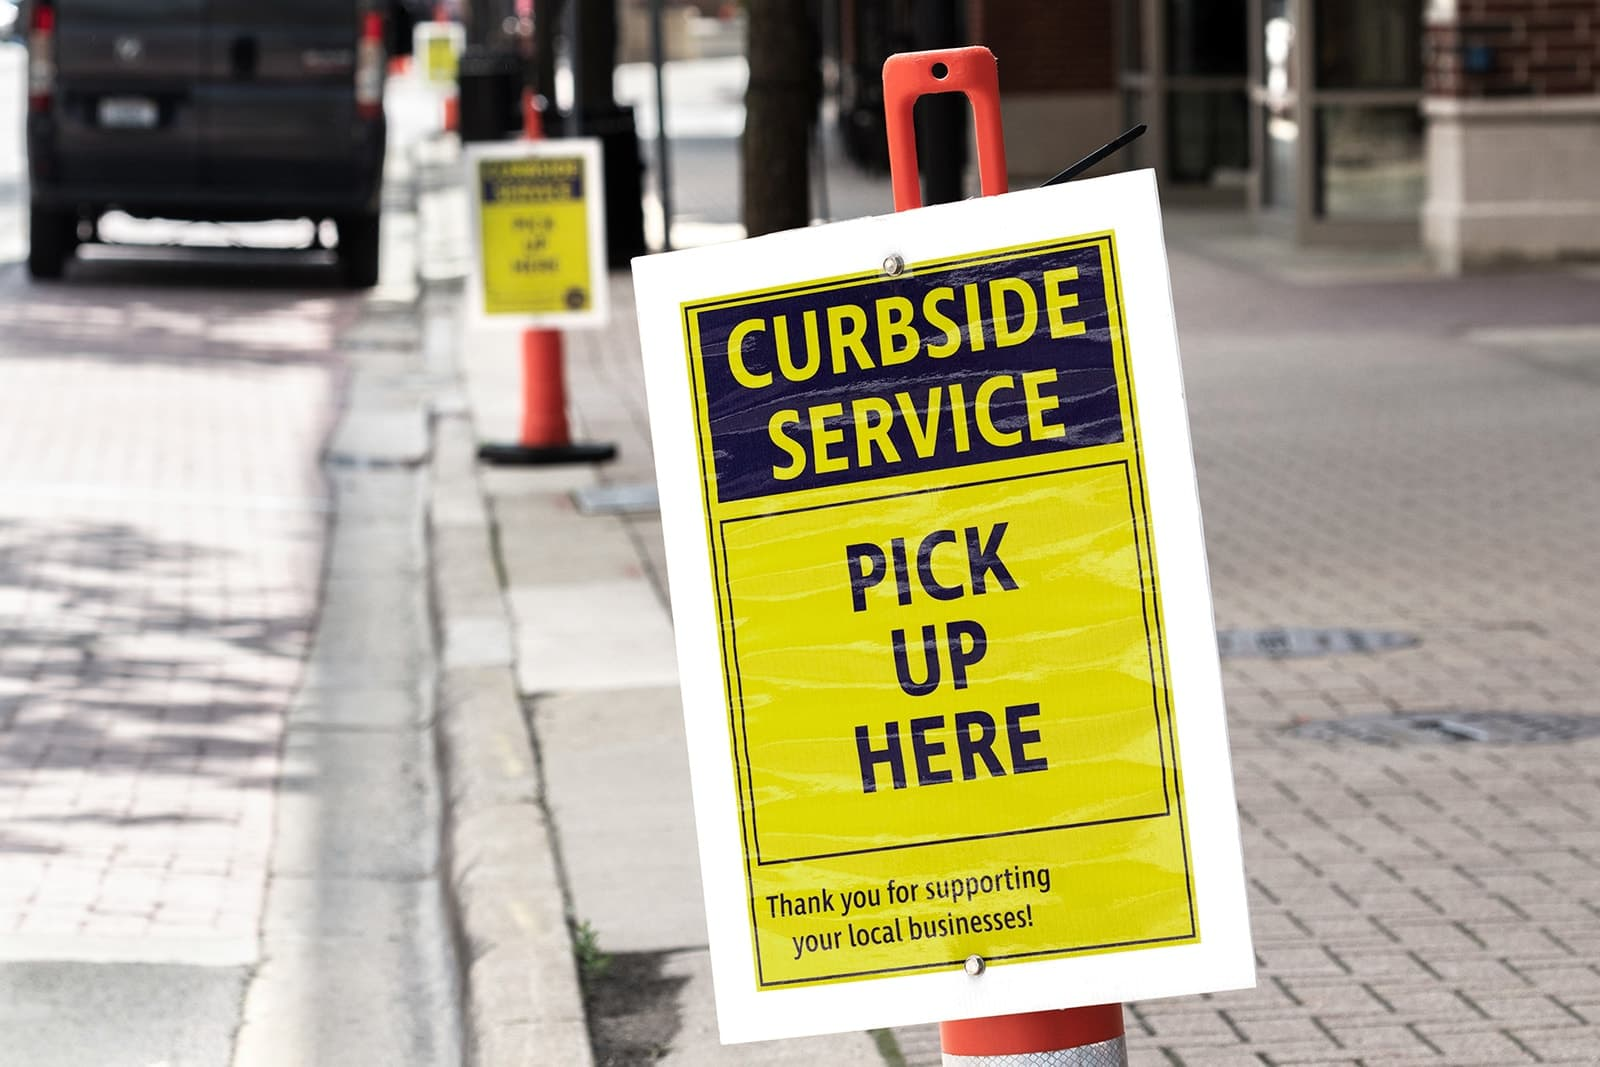 Sign on the street indicating curbside service